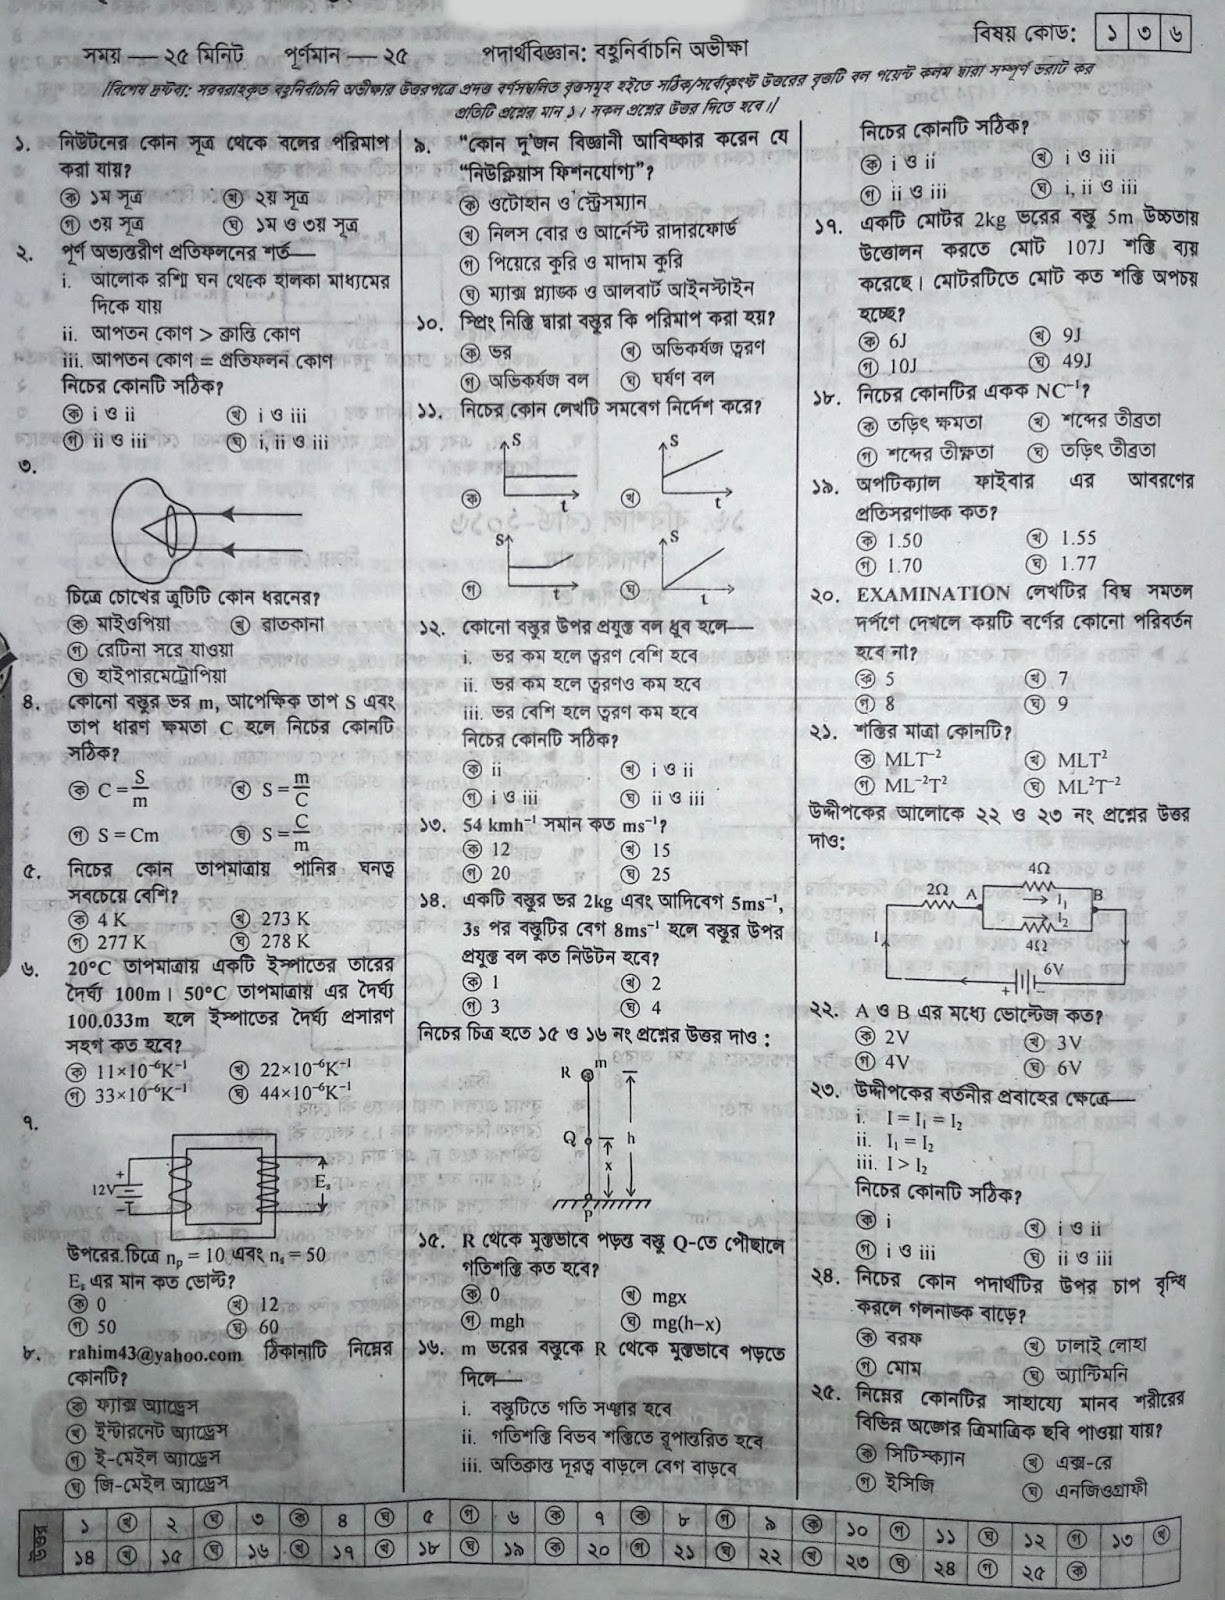 ssc physics suggestion, exam question paper, model question, mcq question, question pattern, preparation for dhaka board, all boards